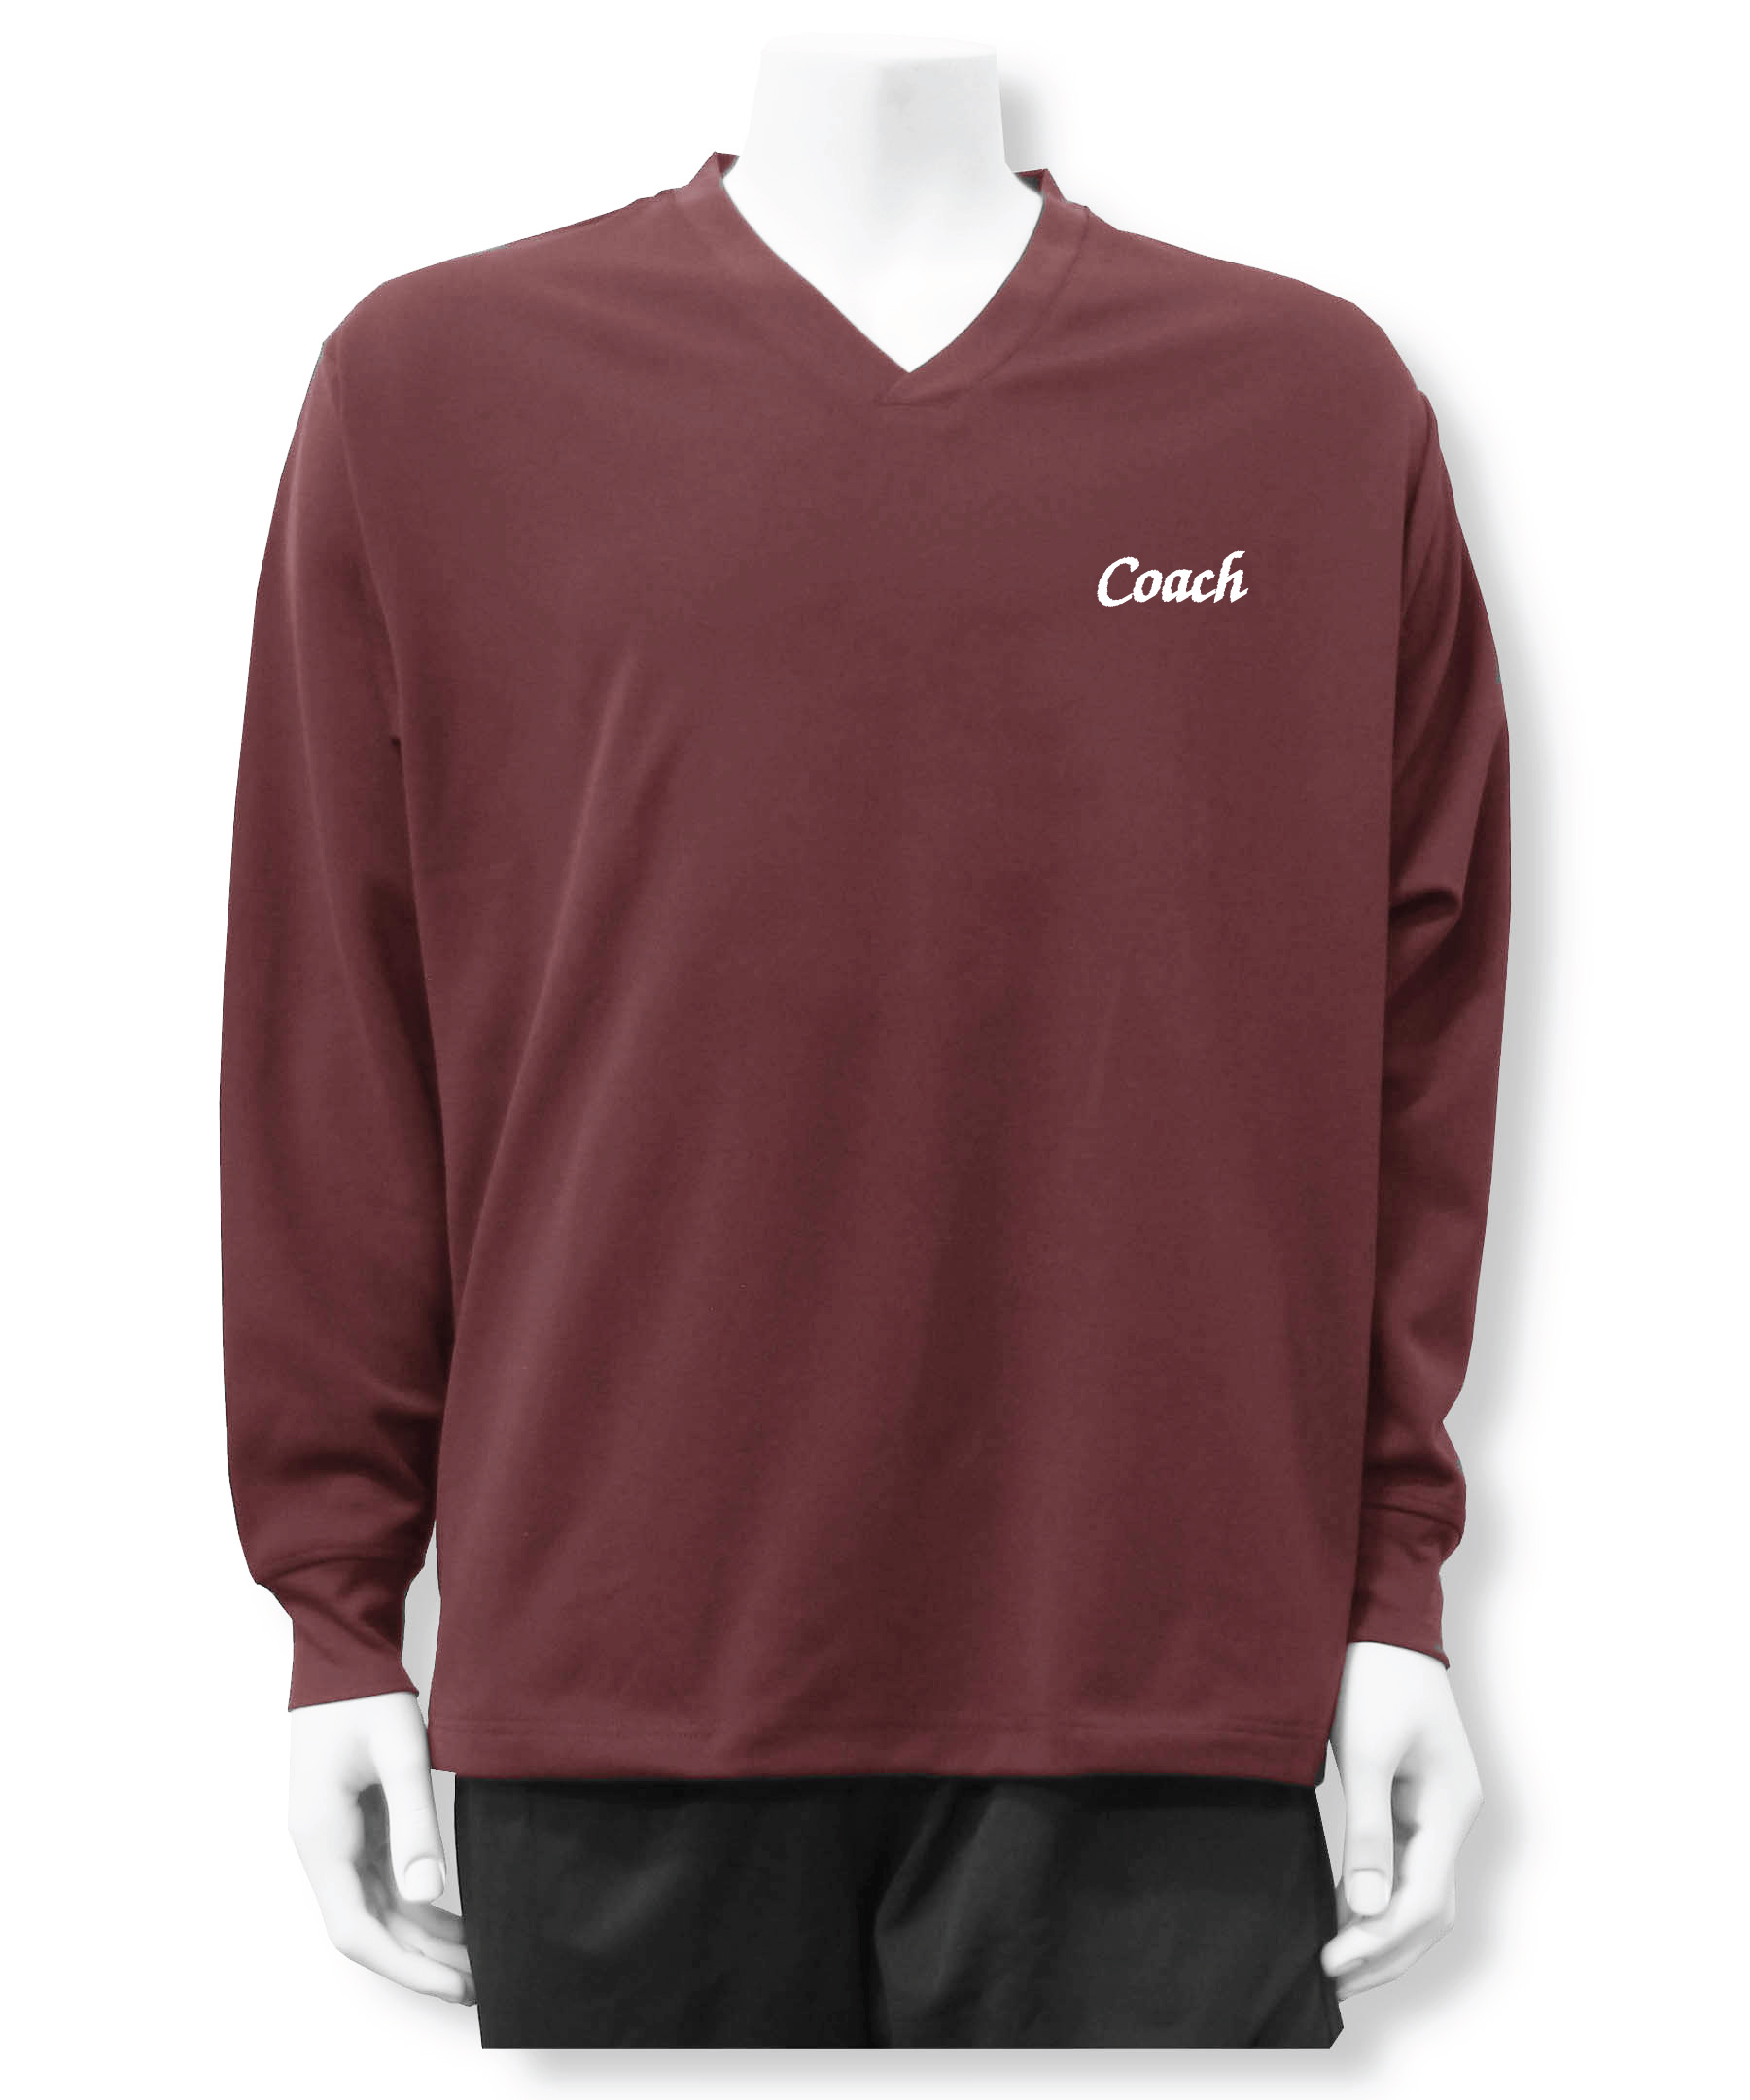 Coach pullover shirt jacket in maroon by Code Four Athletics